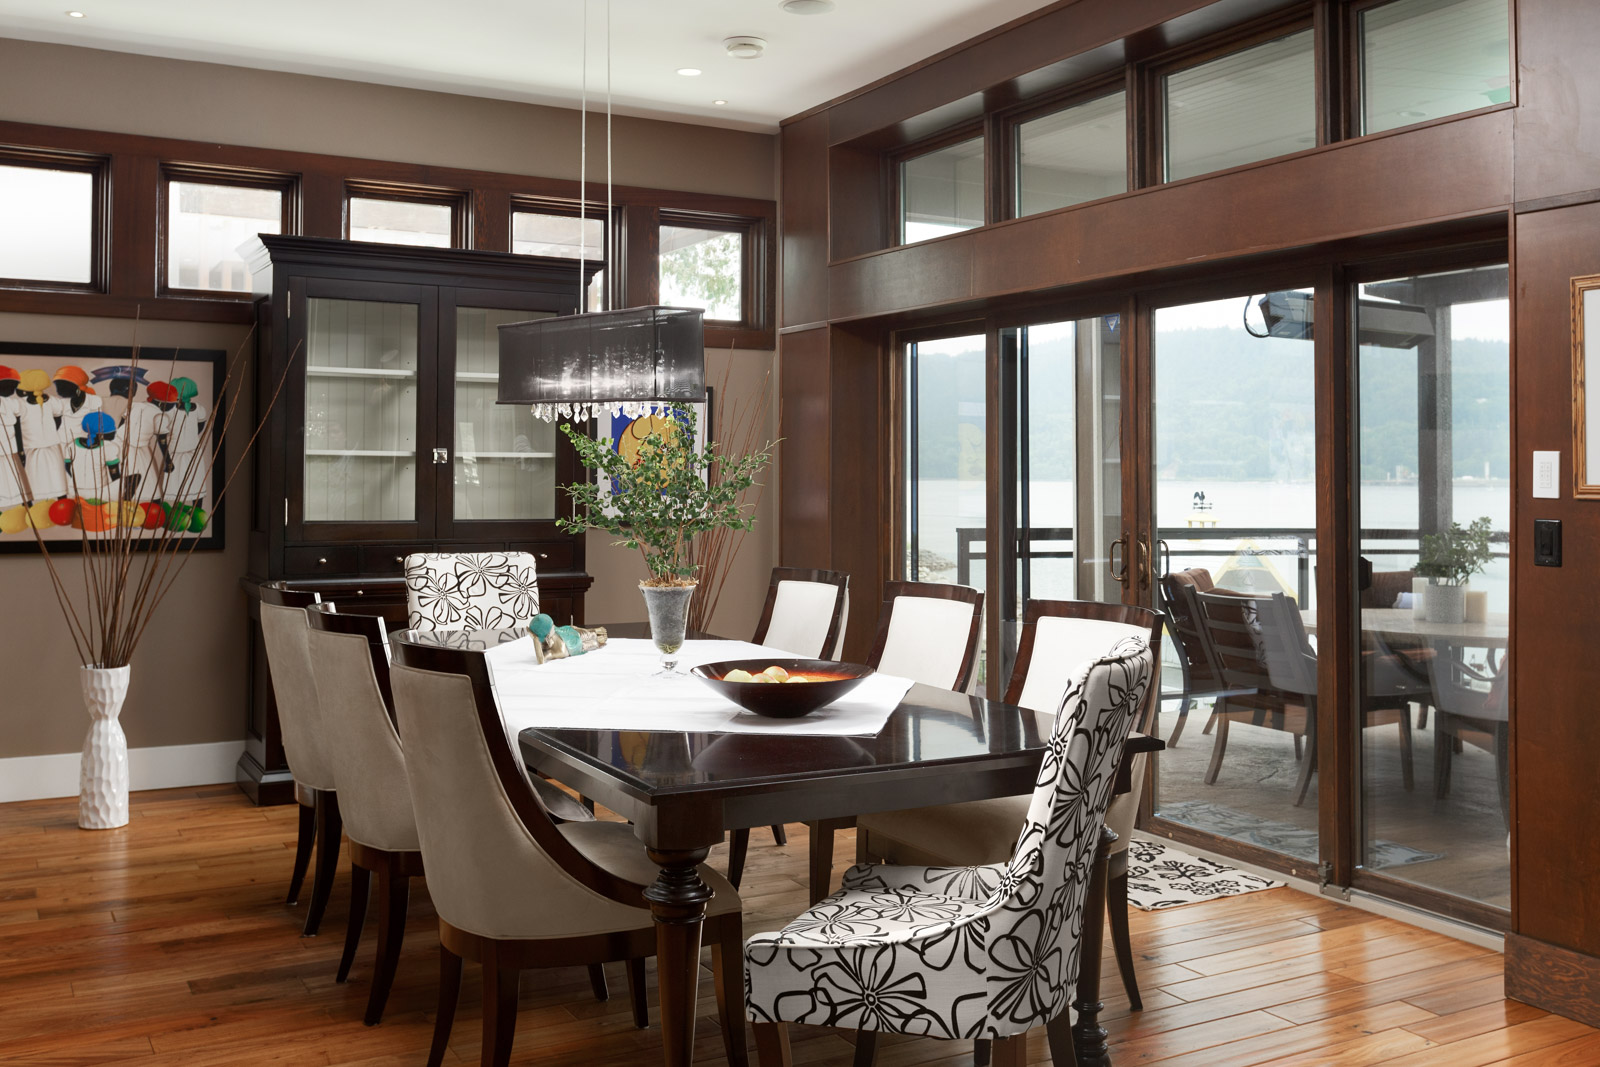 Dining room of high-end North Shore home